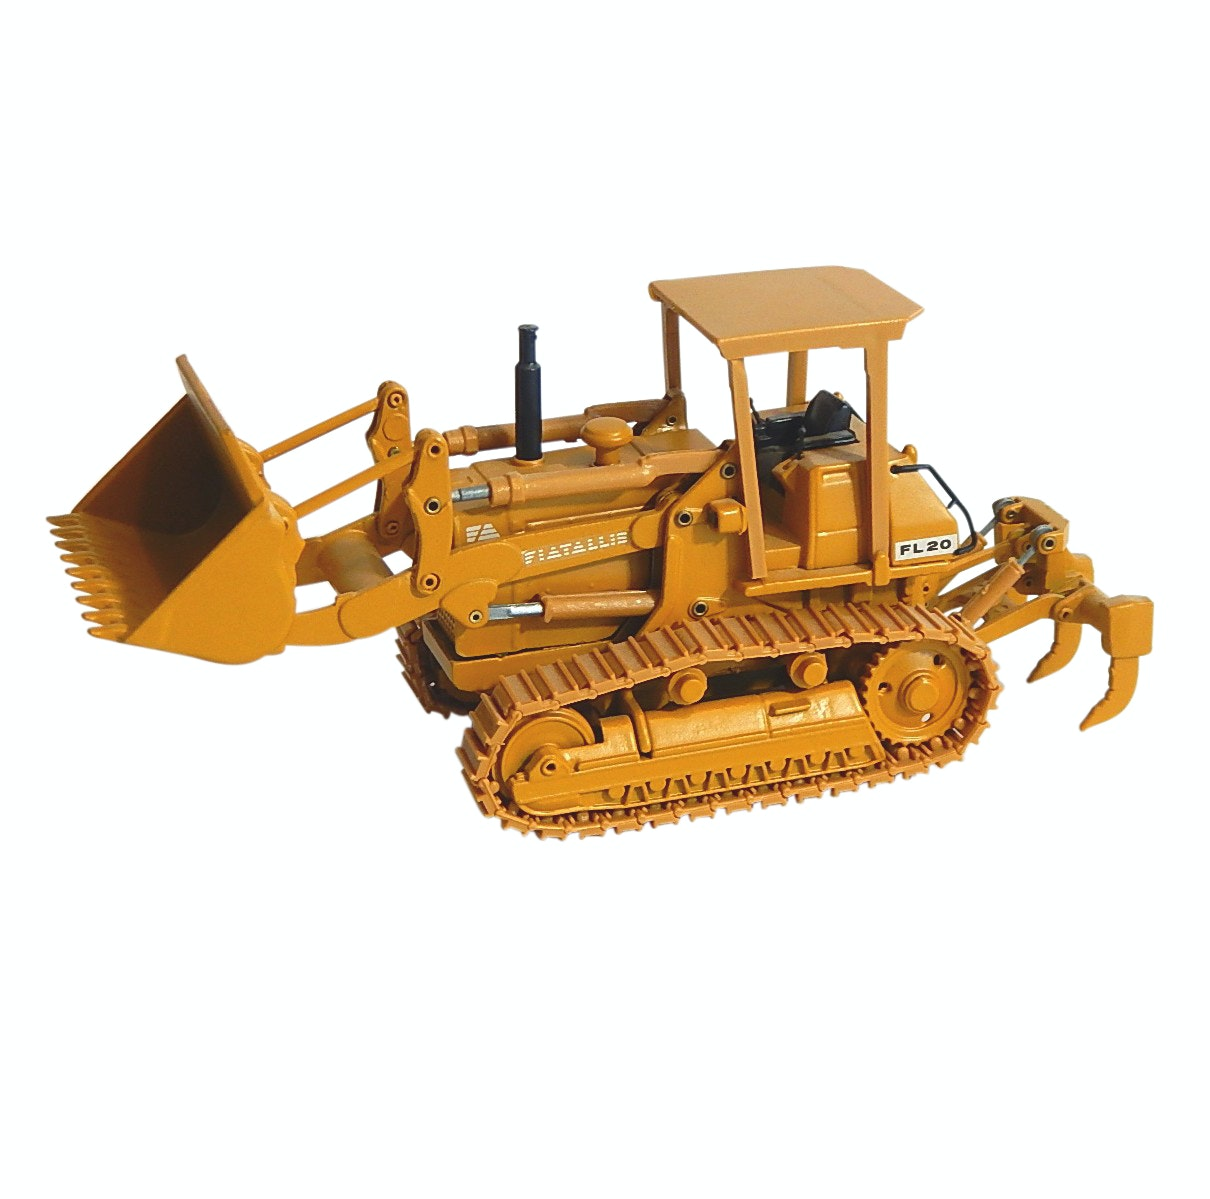 Die Cast Old Cars Fiat Allis FL20 1:50 Scale Crawler Loader - Italy